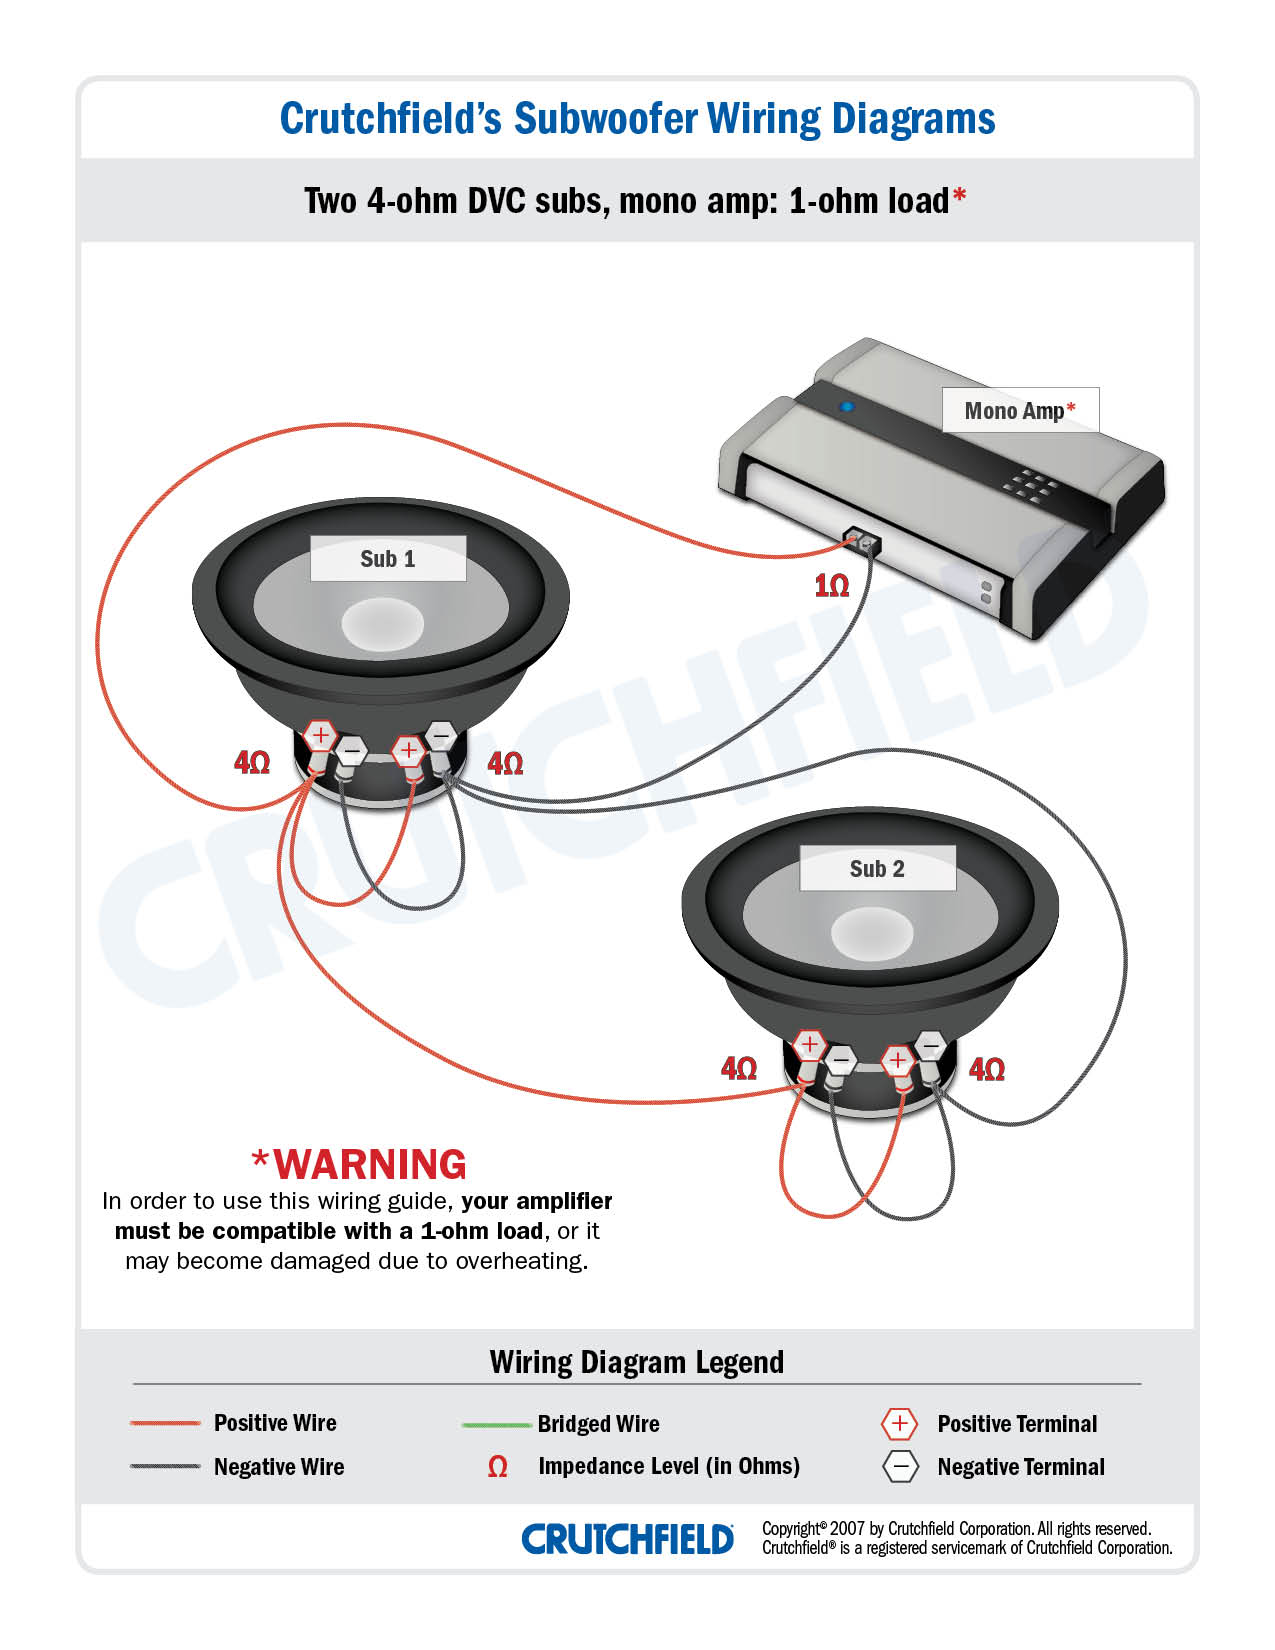 A great match for those subs would be a Pioneer GM-D8601, which can put out  800 watts RMS, the subs' exact RMS rating, when wired like this diagram.